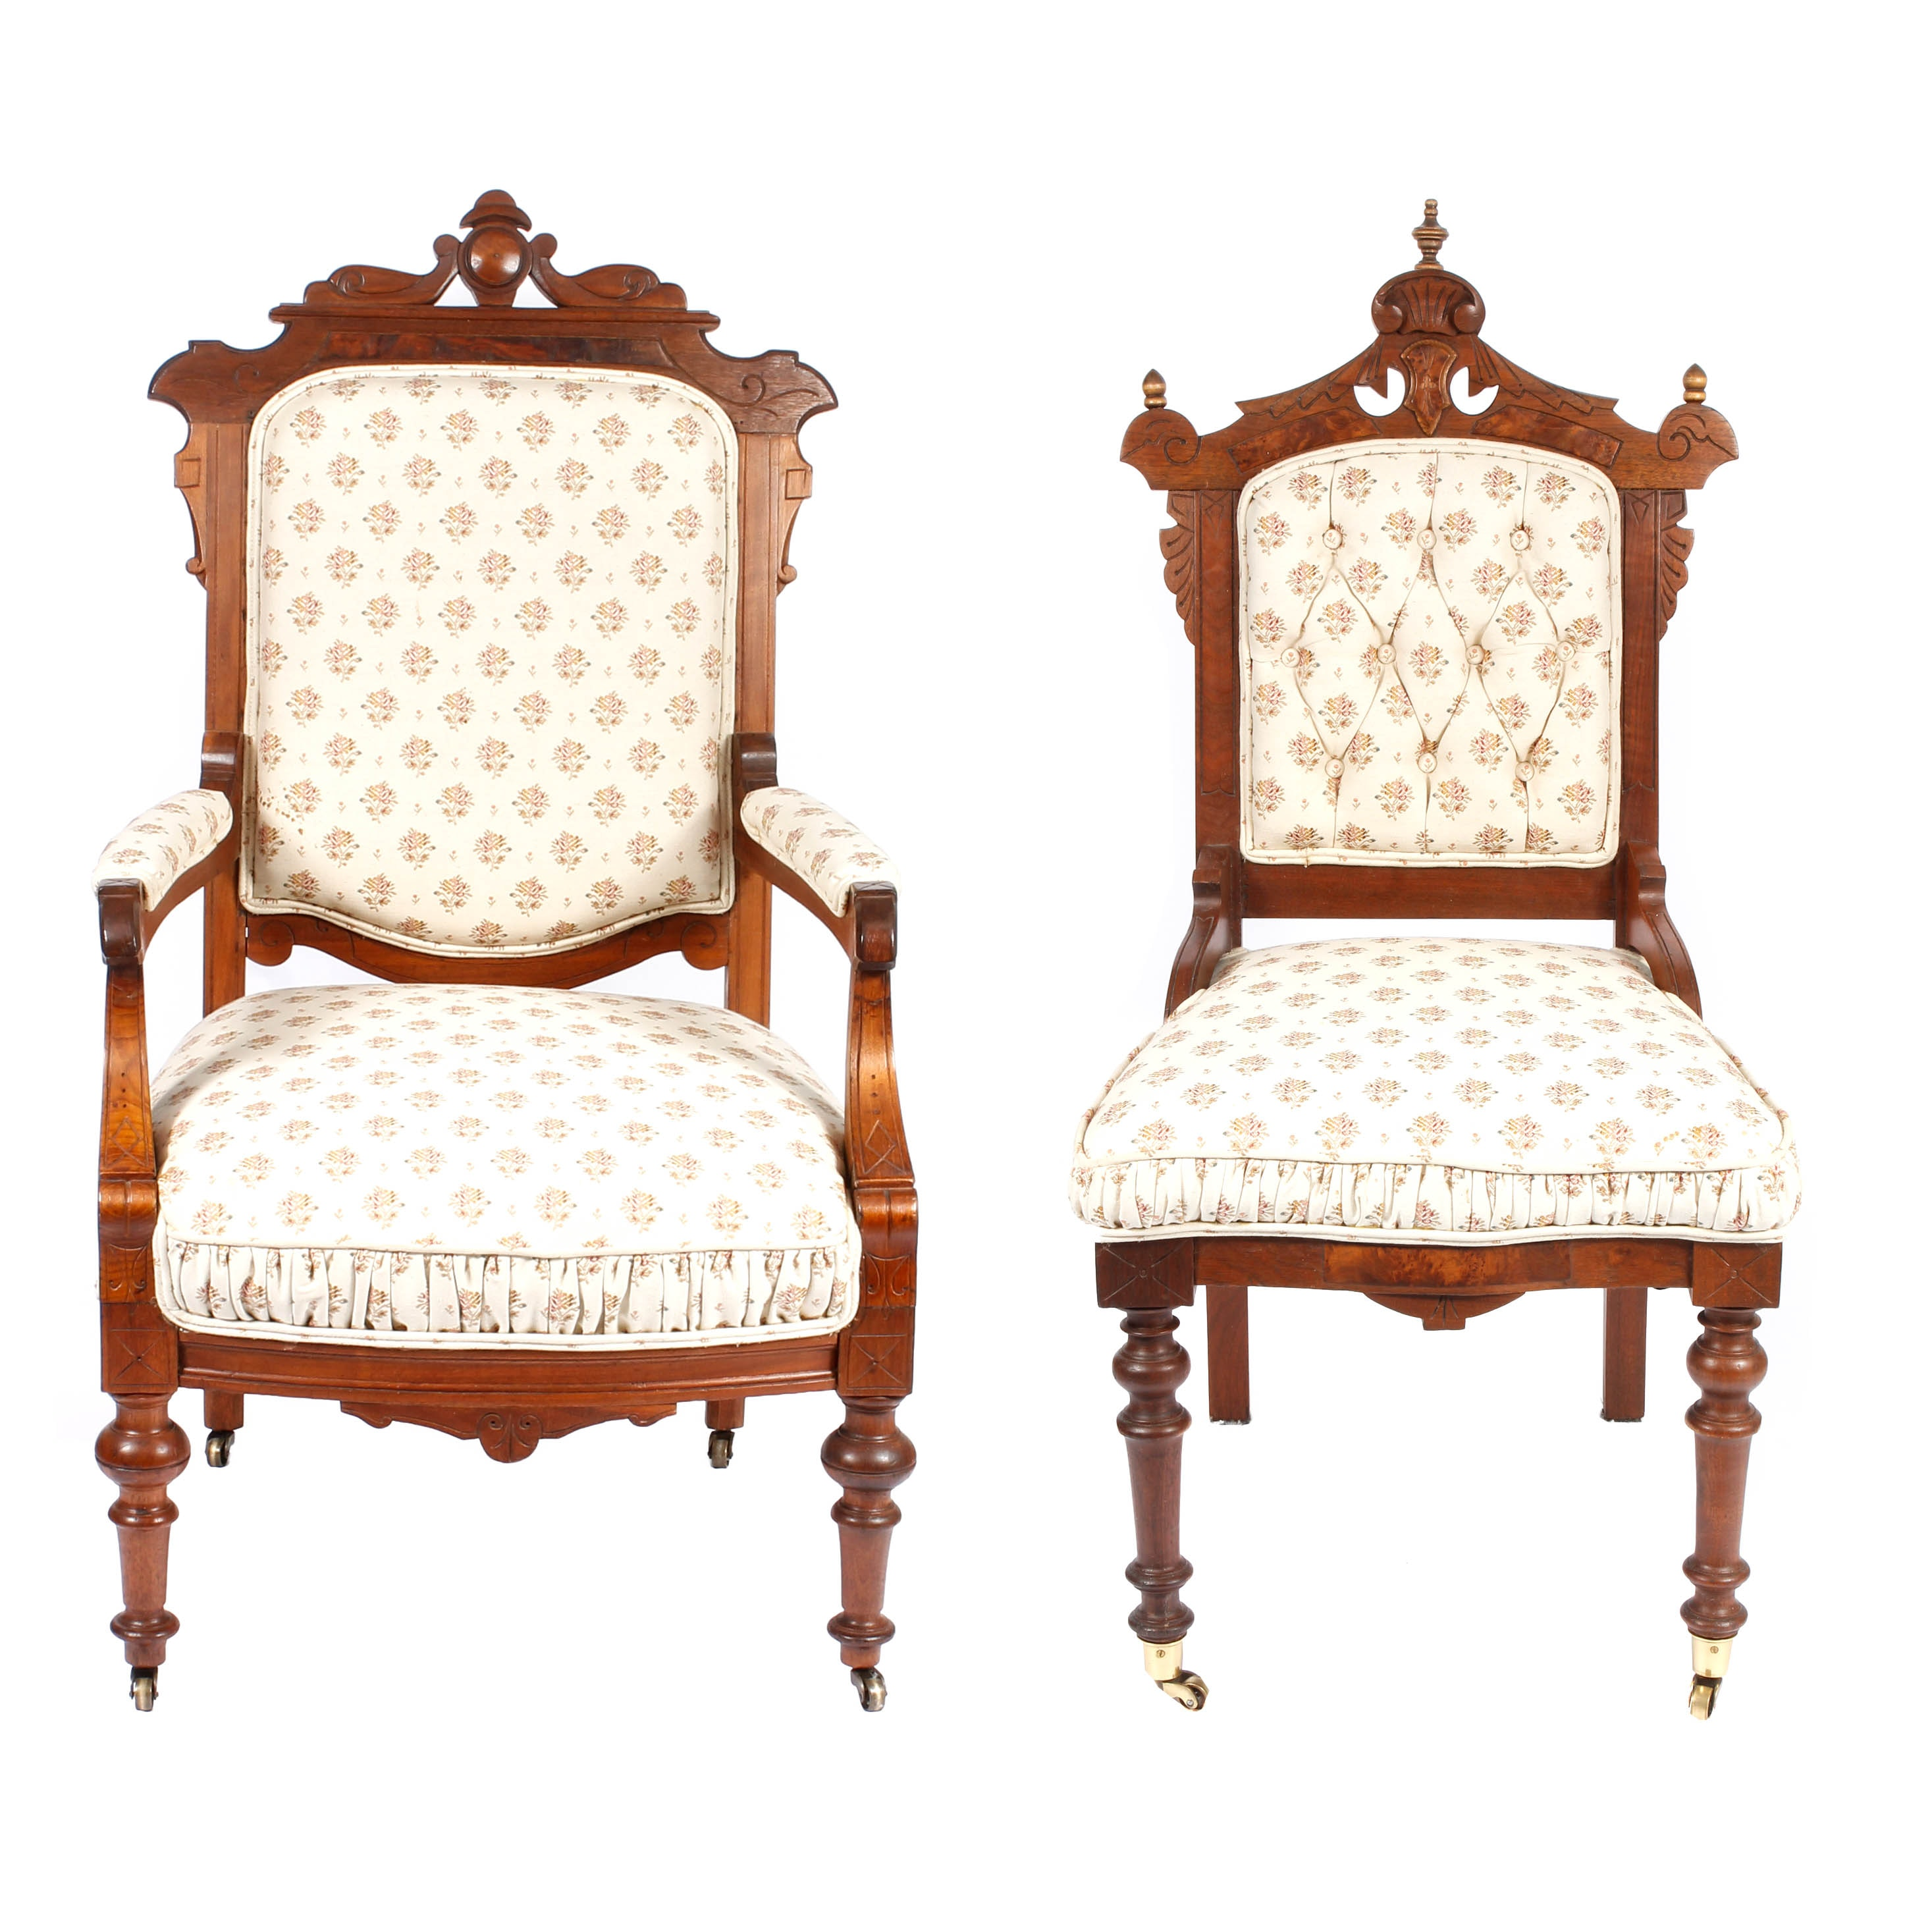 Antique Victorian Upholstered Walnut Chairs